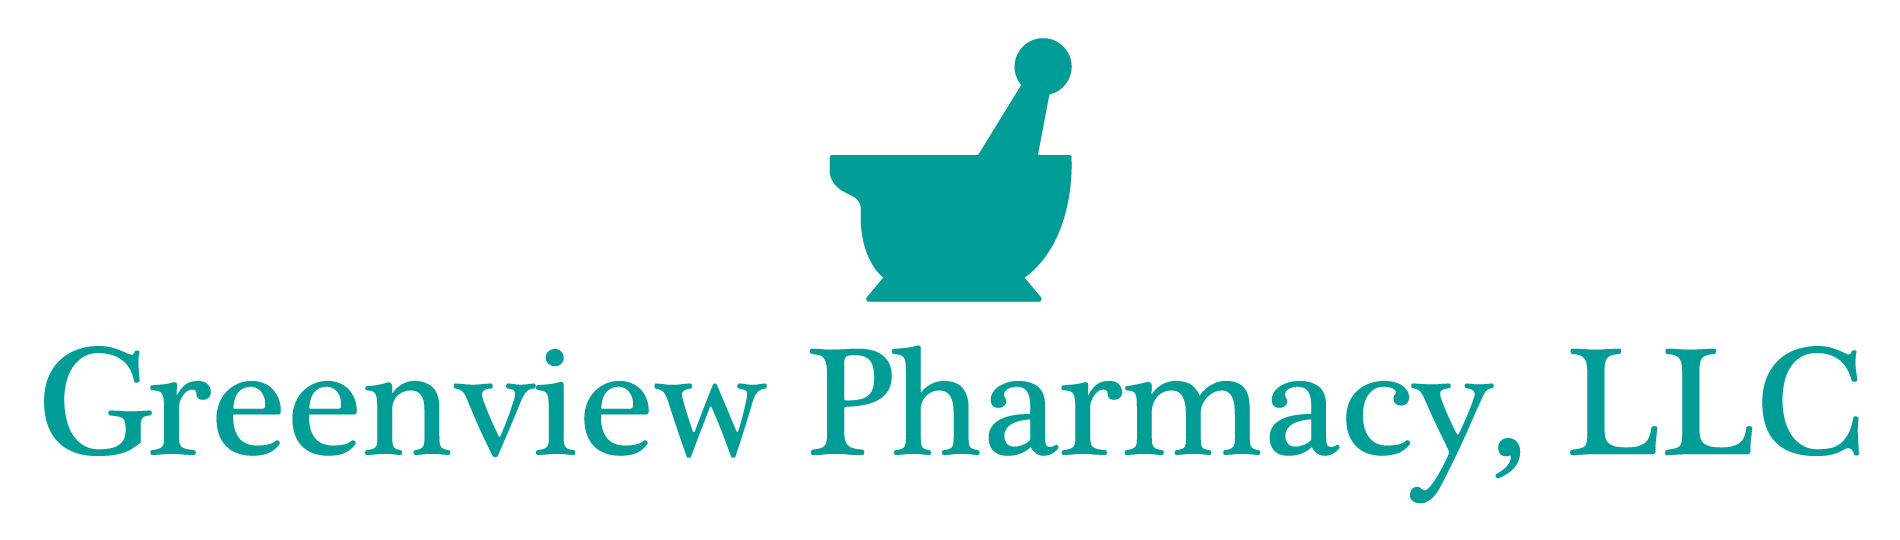 Greenview Pharmacy LLC - new